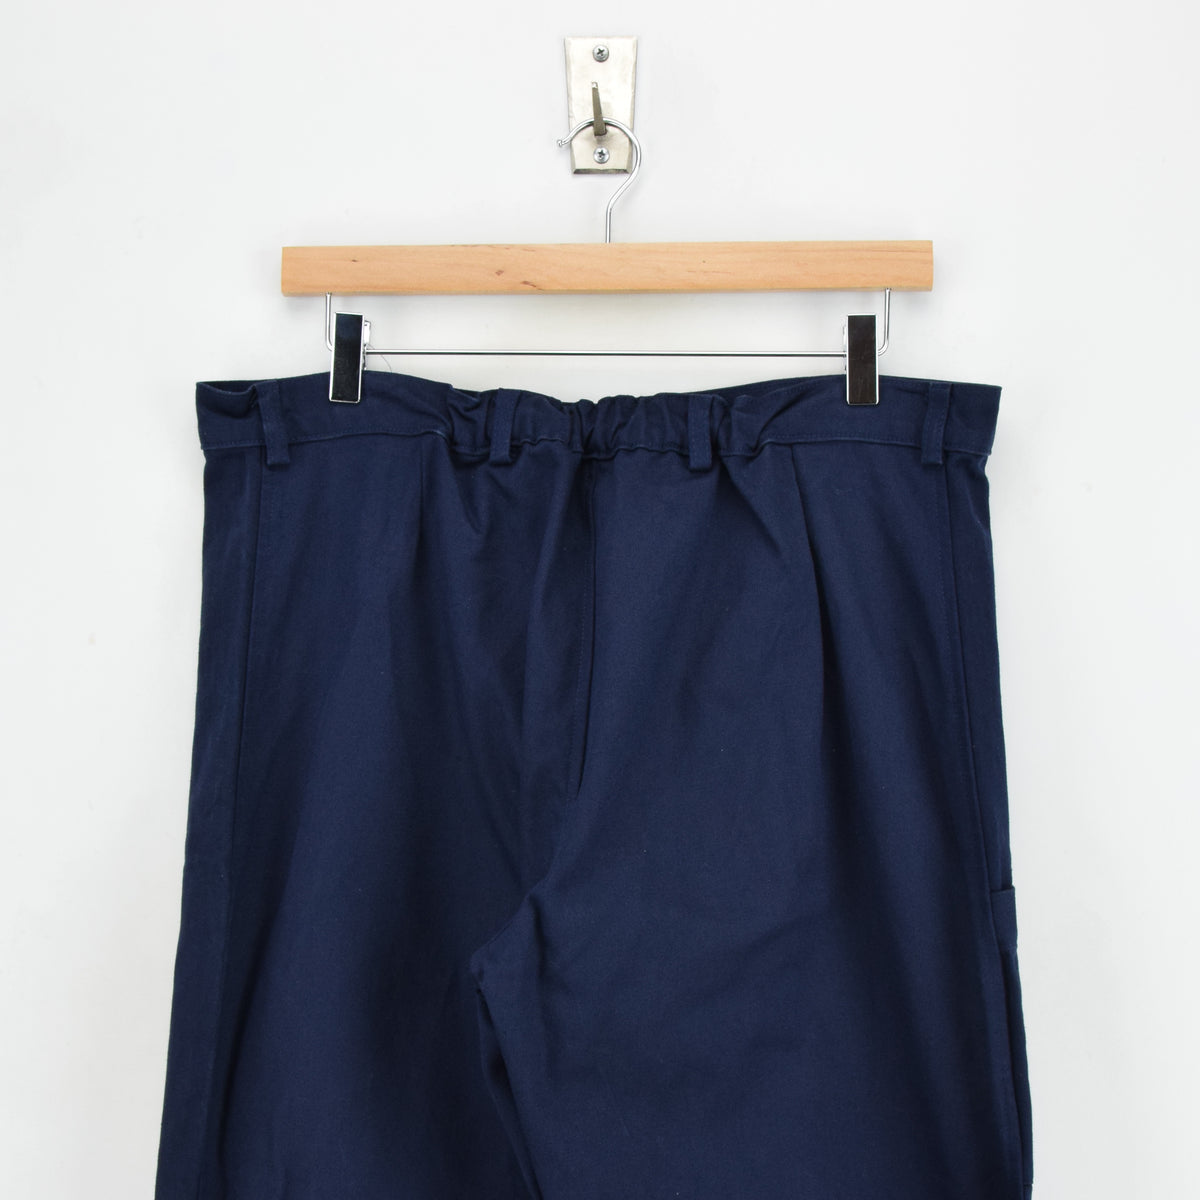 Vintage Deadstock Blue French Style Work Utility Trousers Italy Made 34 W 34 L back waist